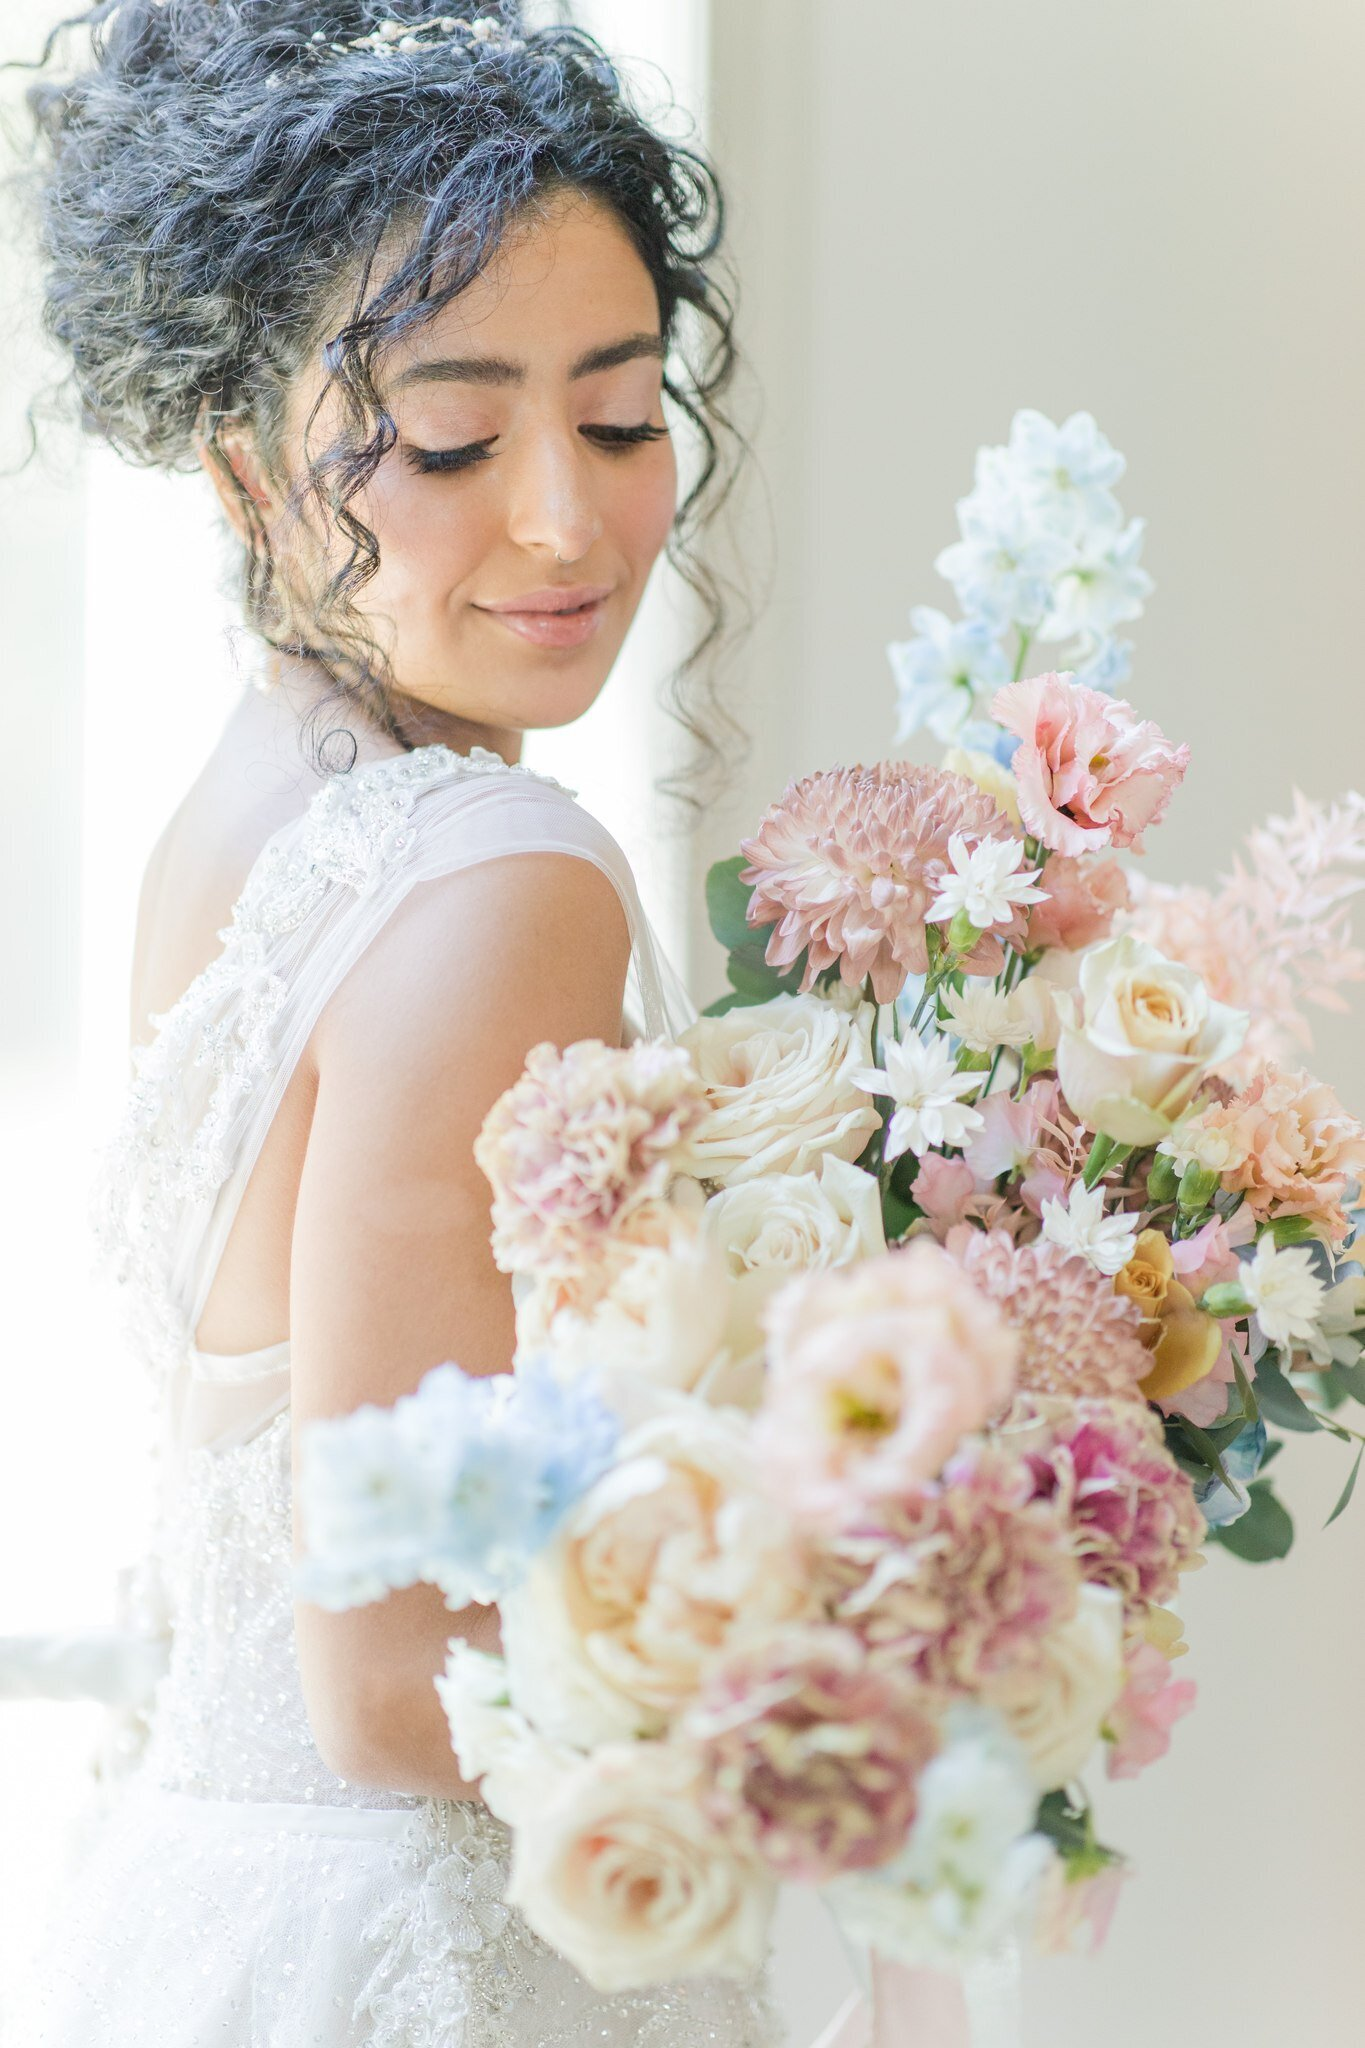 Pastel__Inspired_Wedding_in_the_Chapel_at_the_Park_Chateau_Estate_and_Gardens_in_East_Brunswick-93